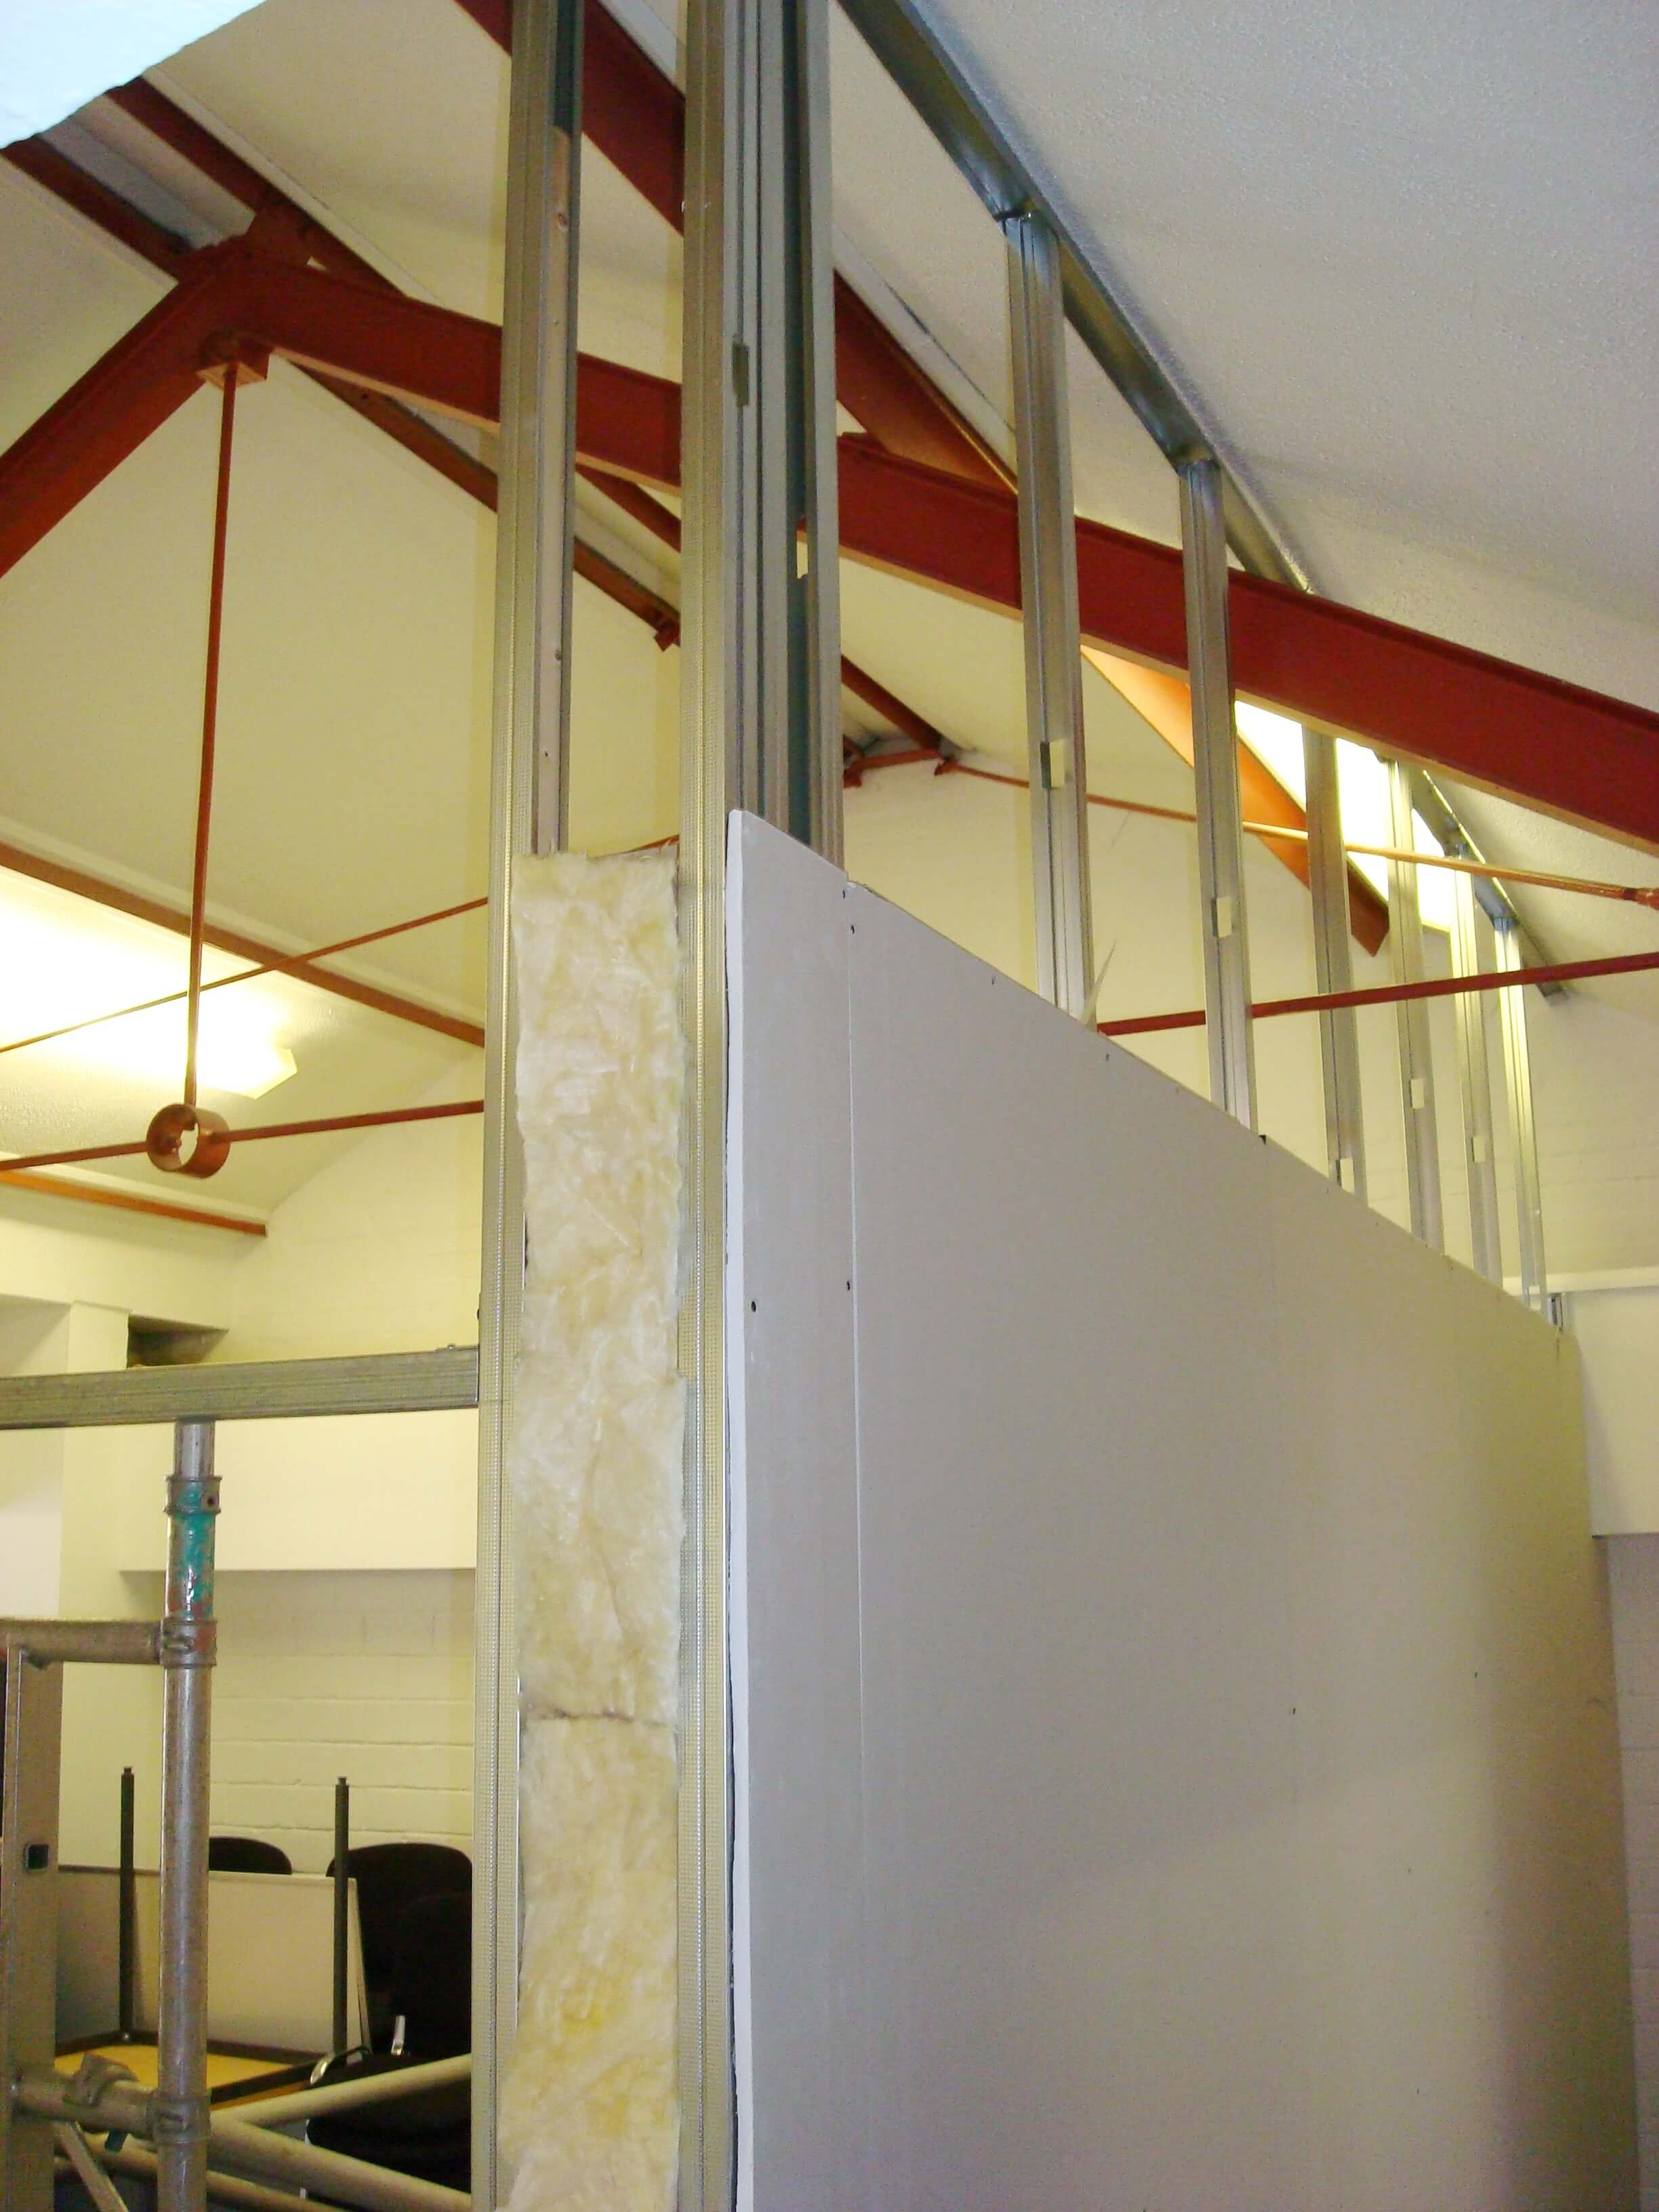 Jumbo Stud Partitioning In Bristol Cre8tive Interiors